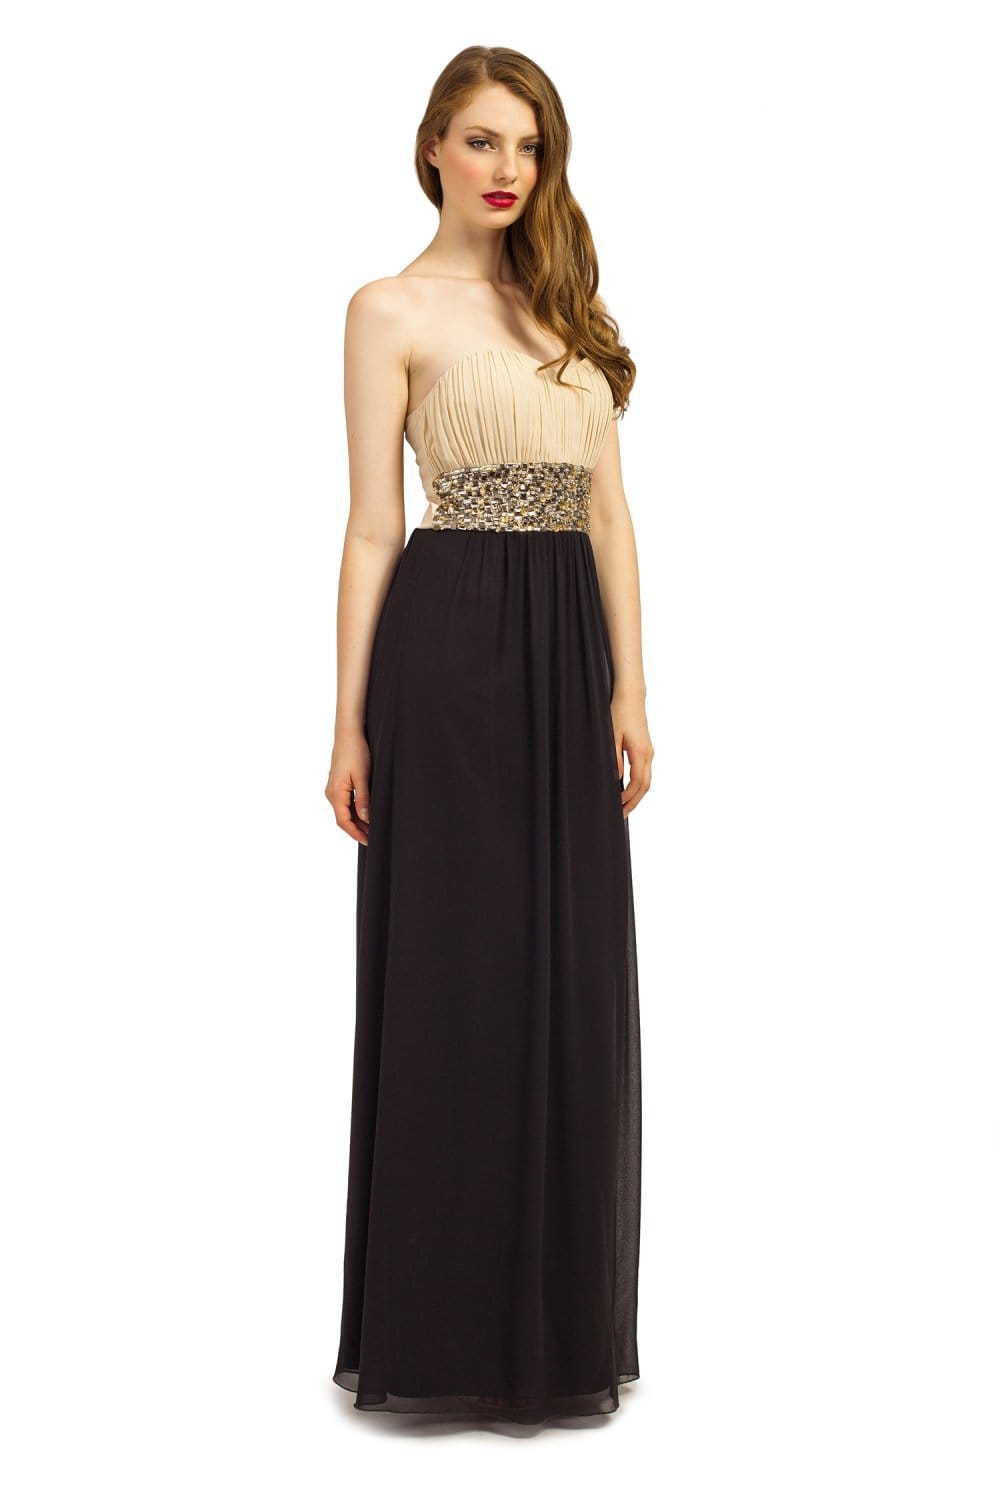 We have sexy party-ready black dresses, trendy dresses for daytime affairs and cocktail dresses in the hottest colors and styles designed for beautiful, full-figured women. Find plus size women's dresses in blue, green, black, pink, red, and more.